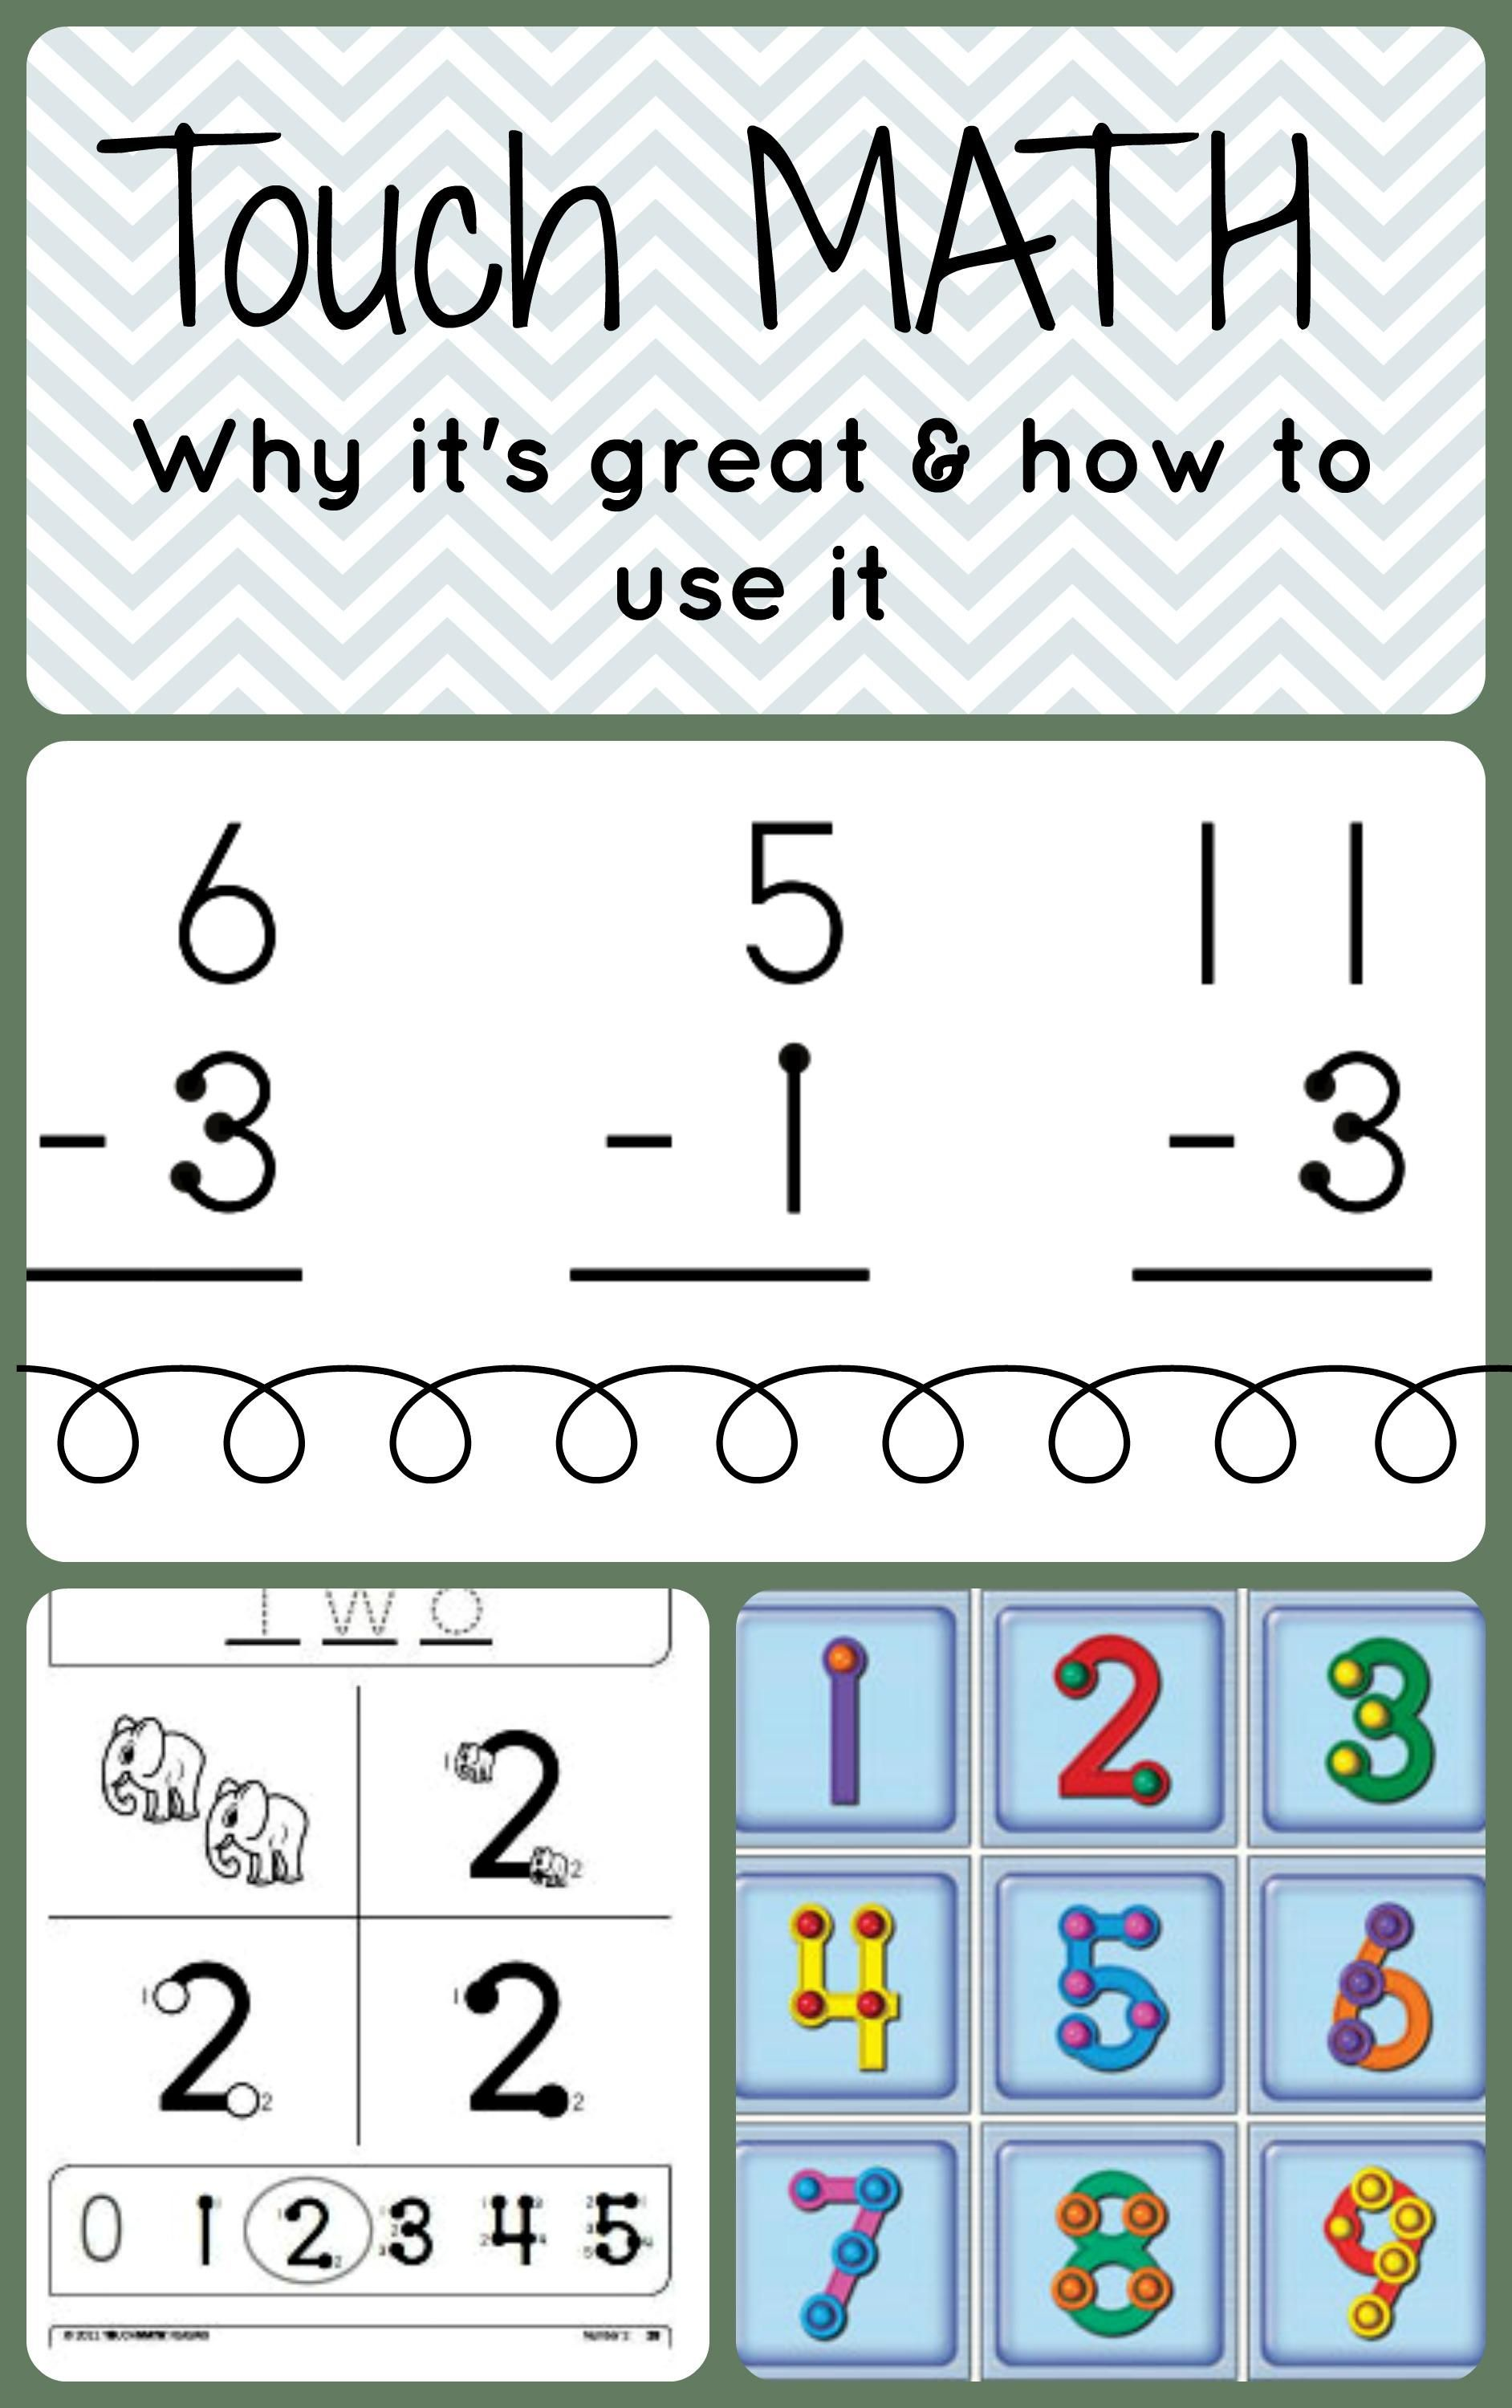 Worksheets Touch Math Free Worksheets touchmath why its great how you should use it touch math are familiar with this visually based approach can be perfect for our